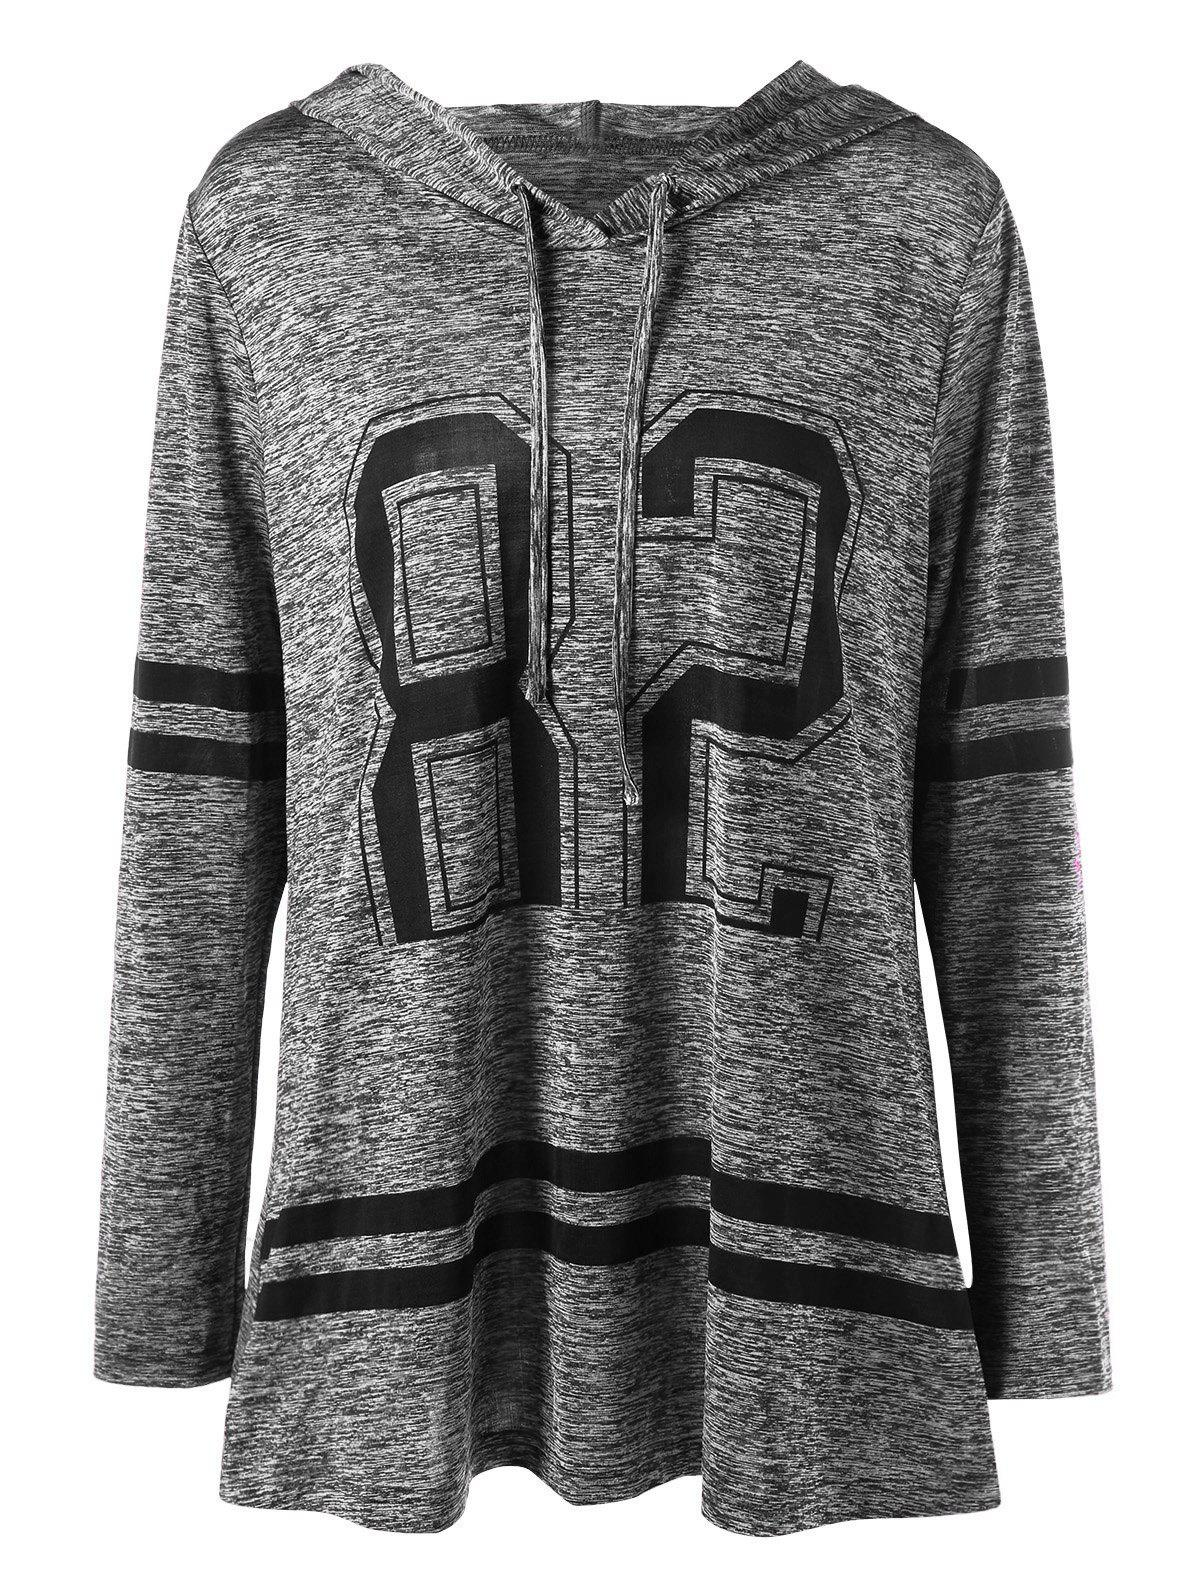 Plus Size Graphic Marled Tunic HoodieWOMEN<br><br>Size: 3XL; Color: BLACK GREY; Material: Polyester,Spandex; Shirt Length: Long; Sleeve Length: Full; Style: Casual; Pattern Style: Others; Season: Fall,Spring; Weight: 0.3100kg; Package Contents: 1 x Hoodie;